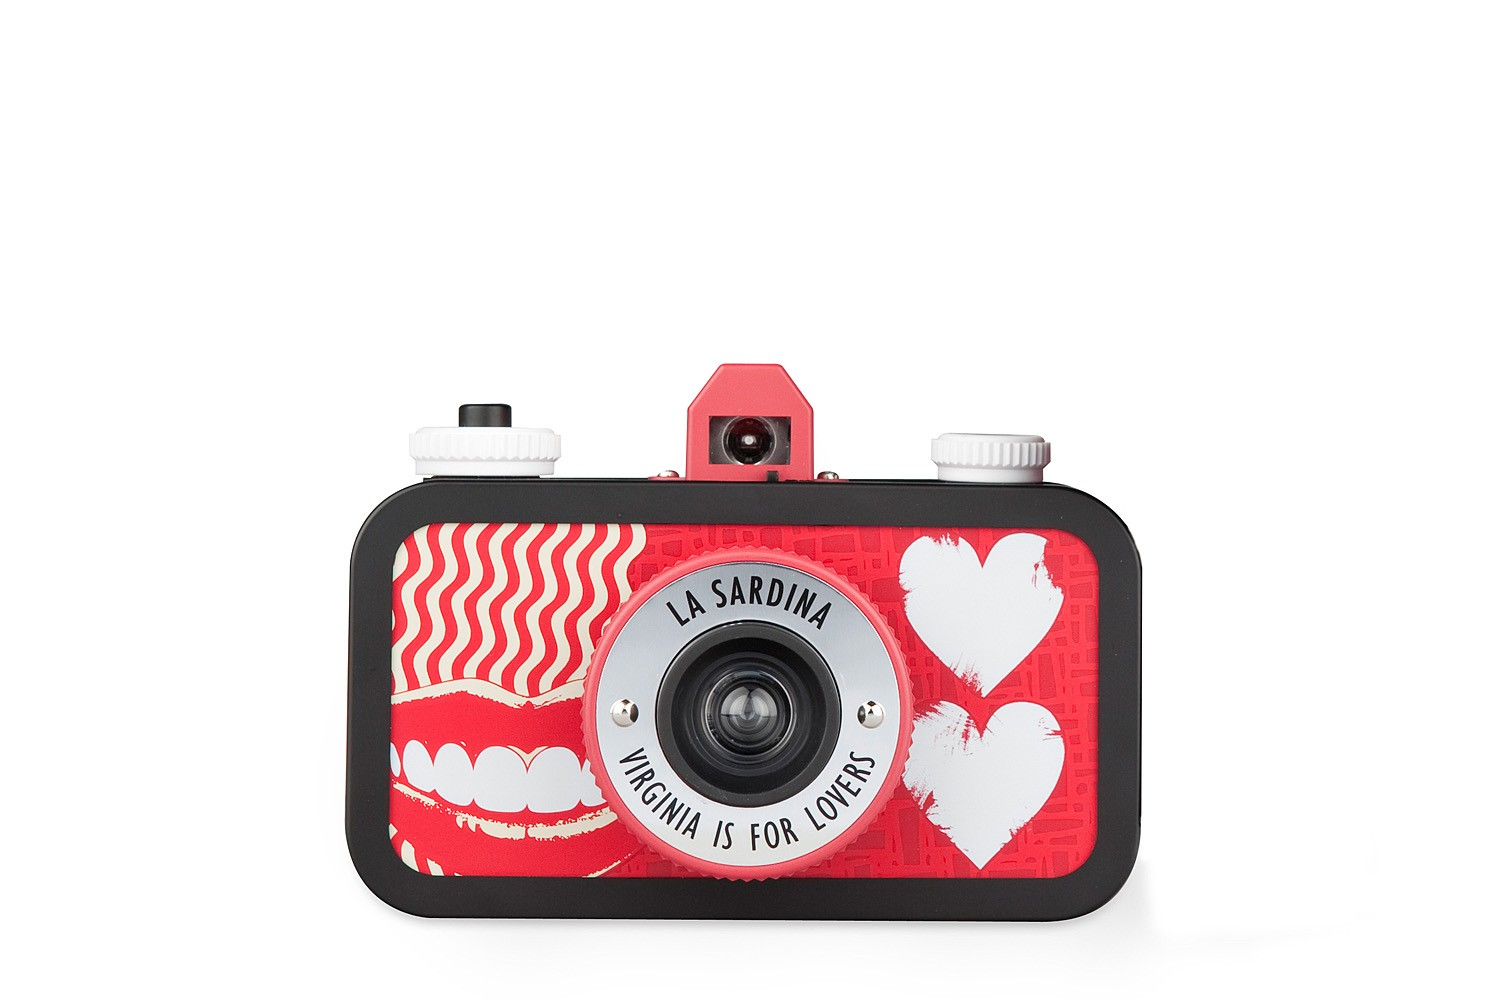 La Sardina Camera Virginia is for Lovers